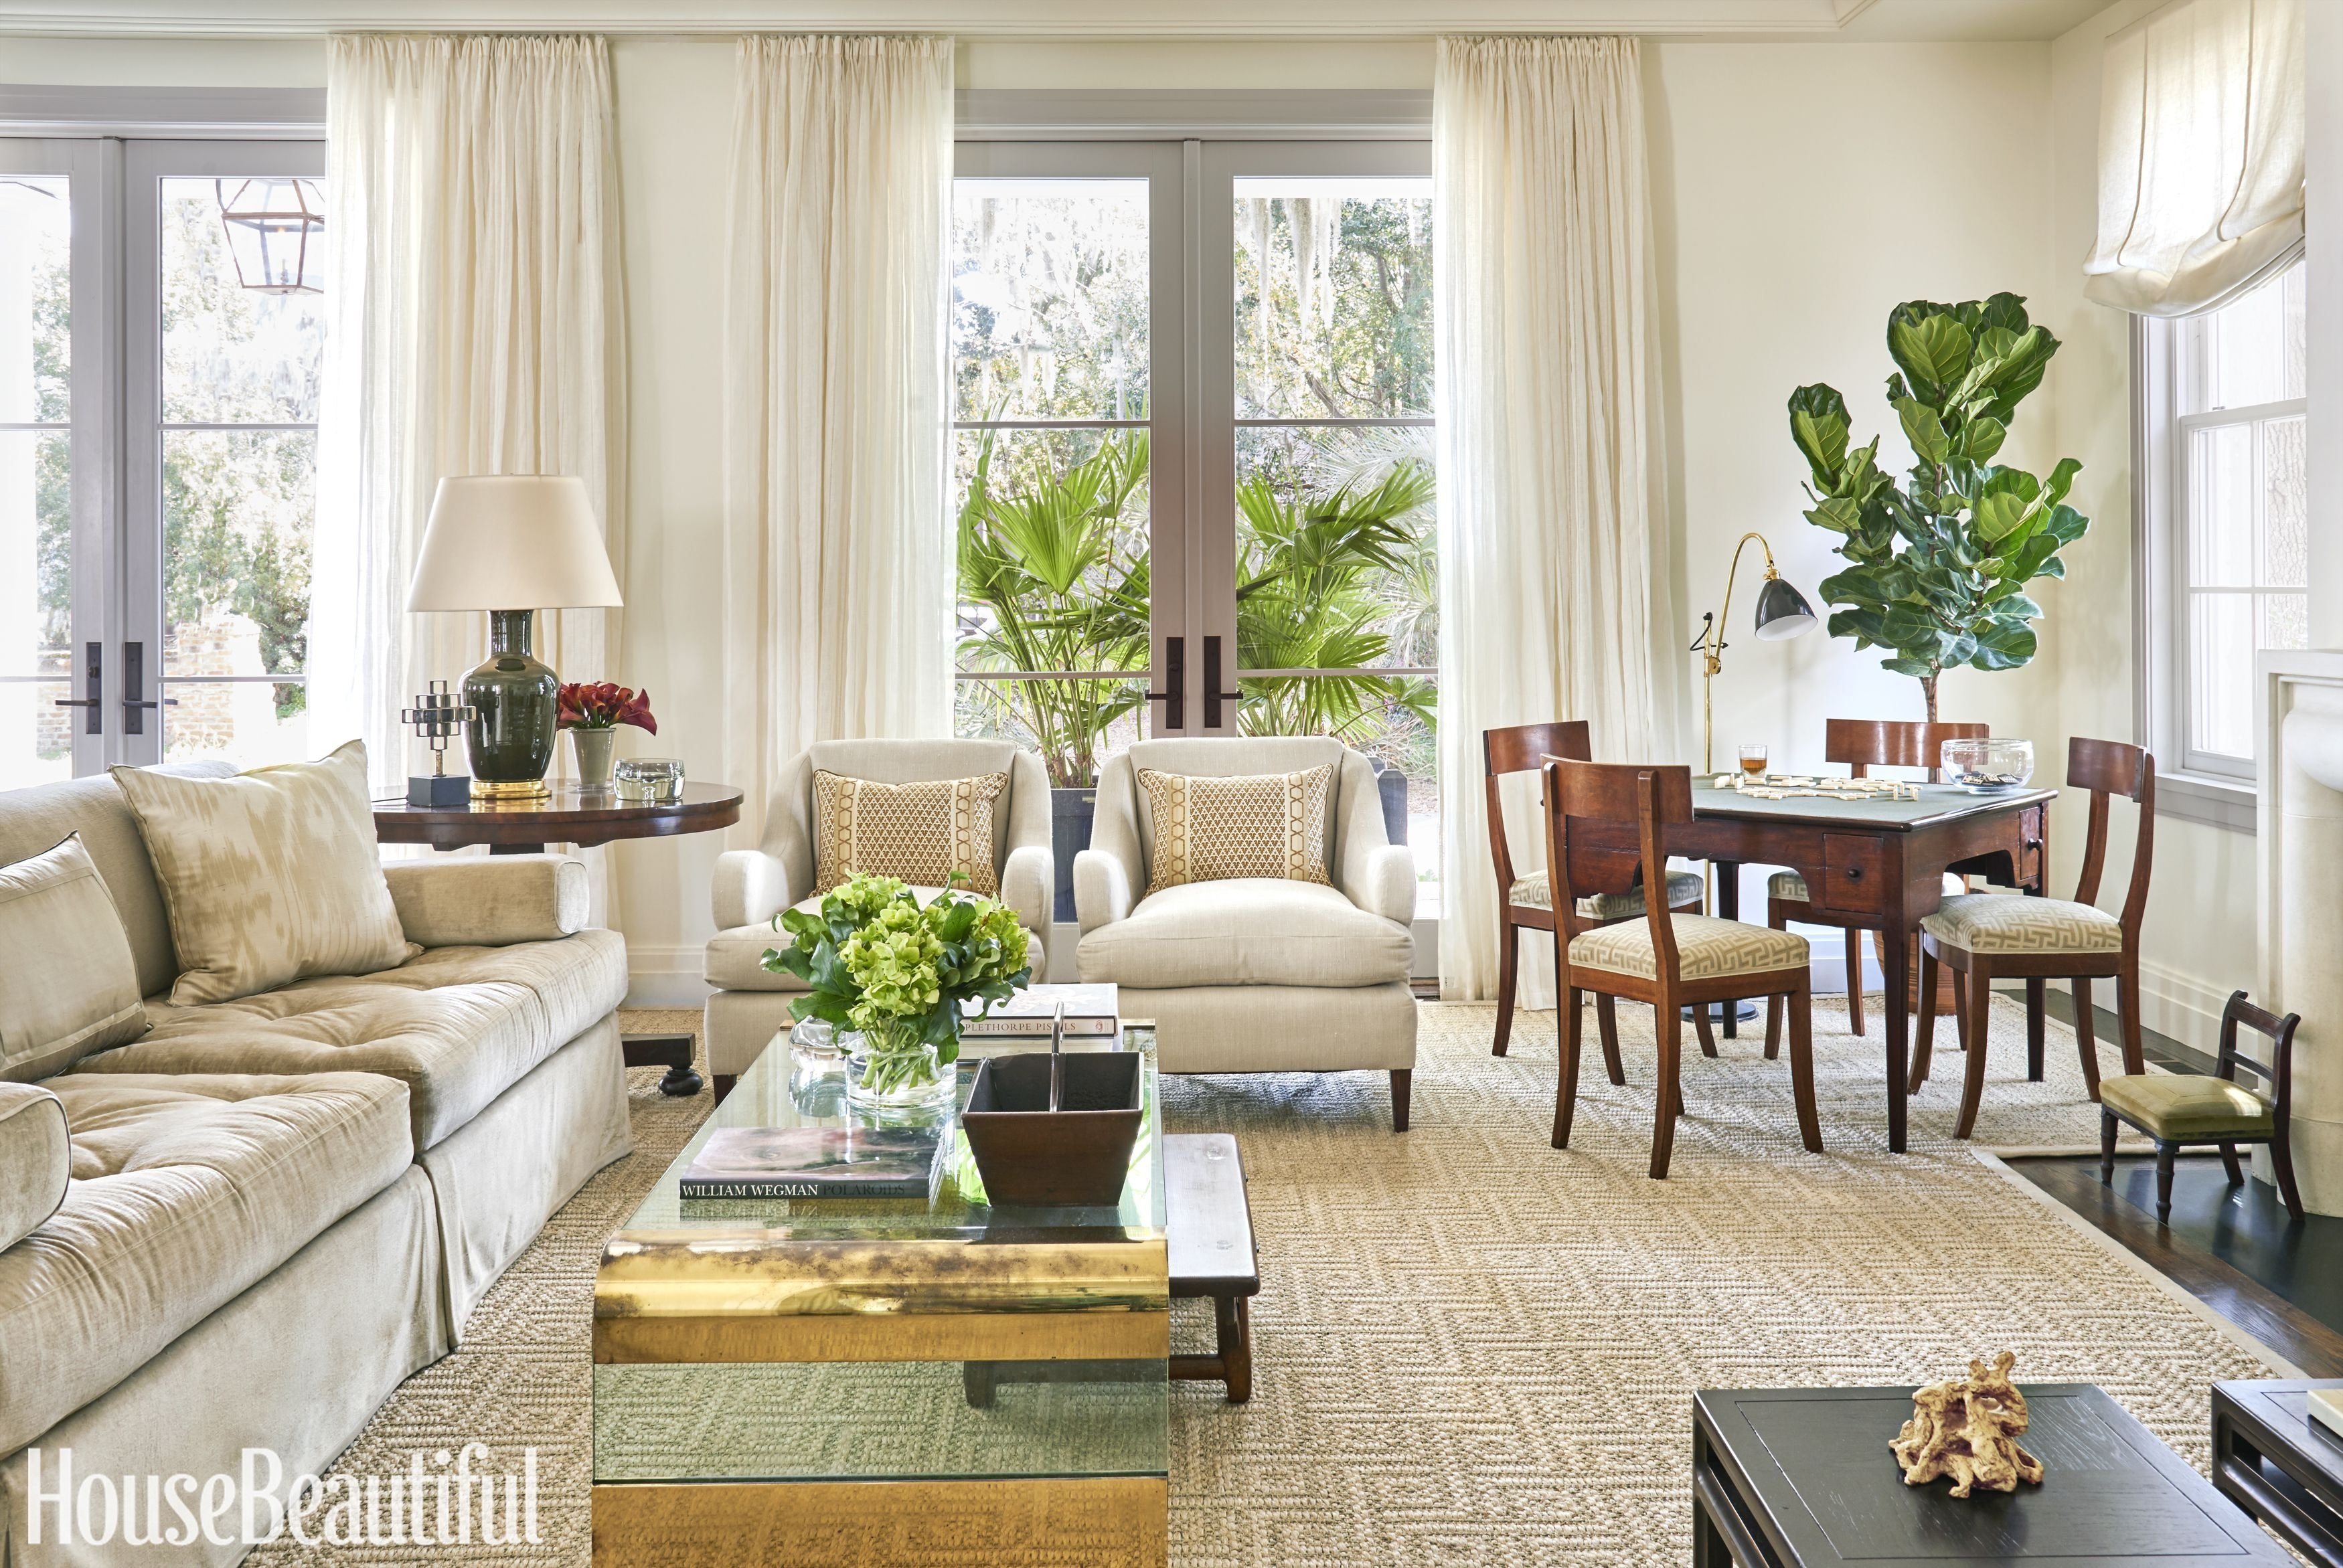 10 Lovely Living Room Decorating Ideas Pictures 70 best living room decorating ideas designs housebeautiful 9